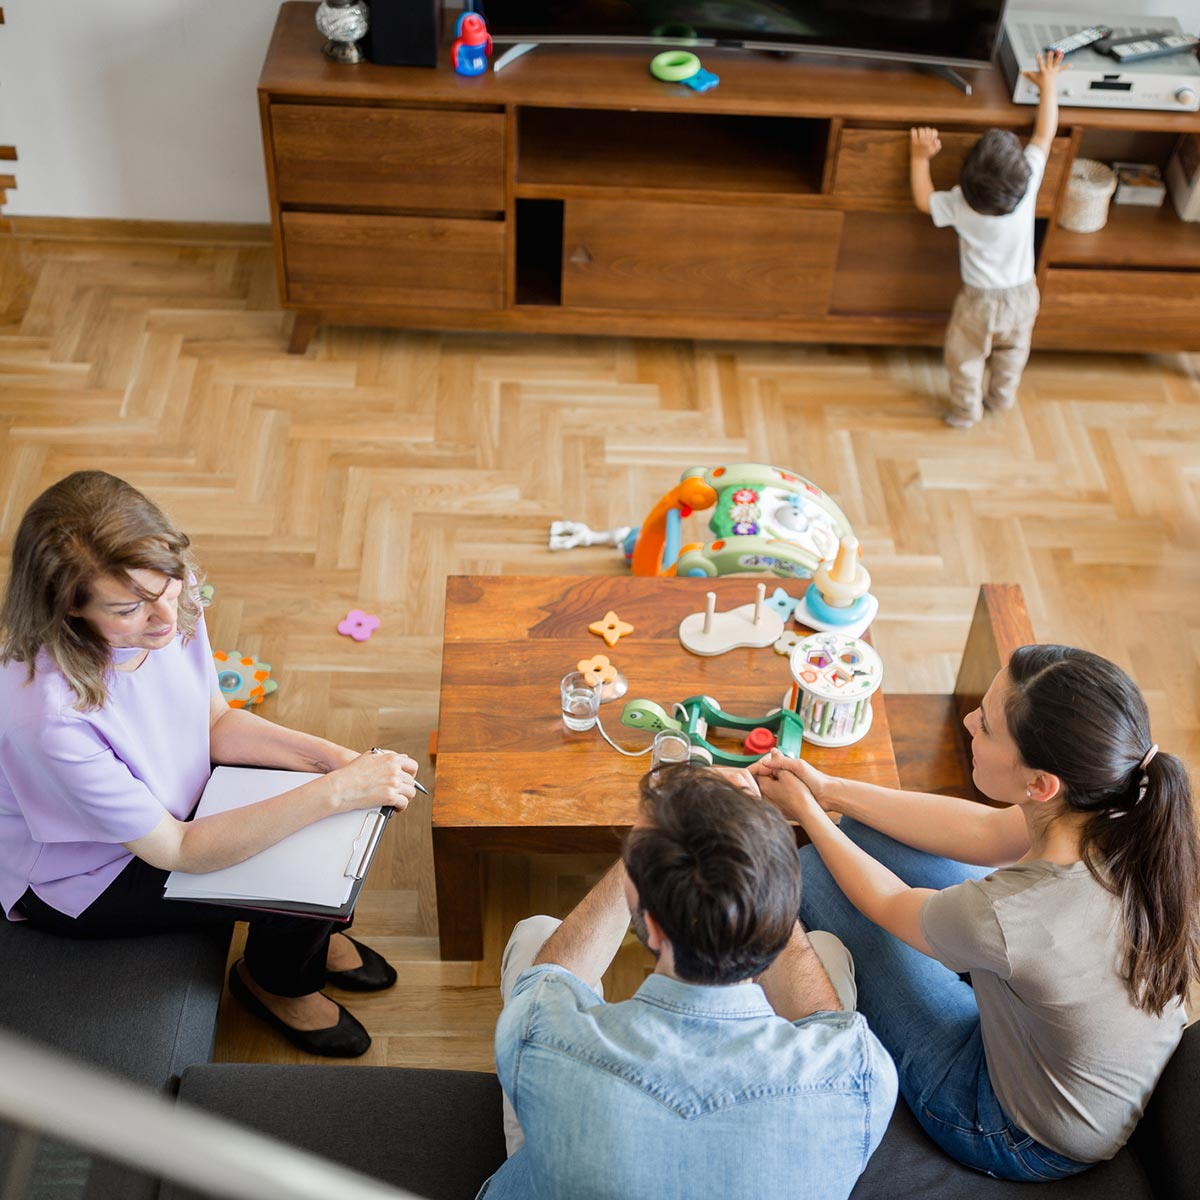 family talking while kid plays with toys and reaches for a remote